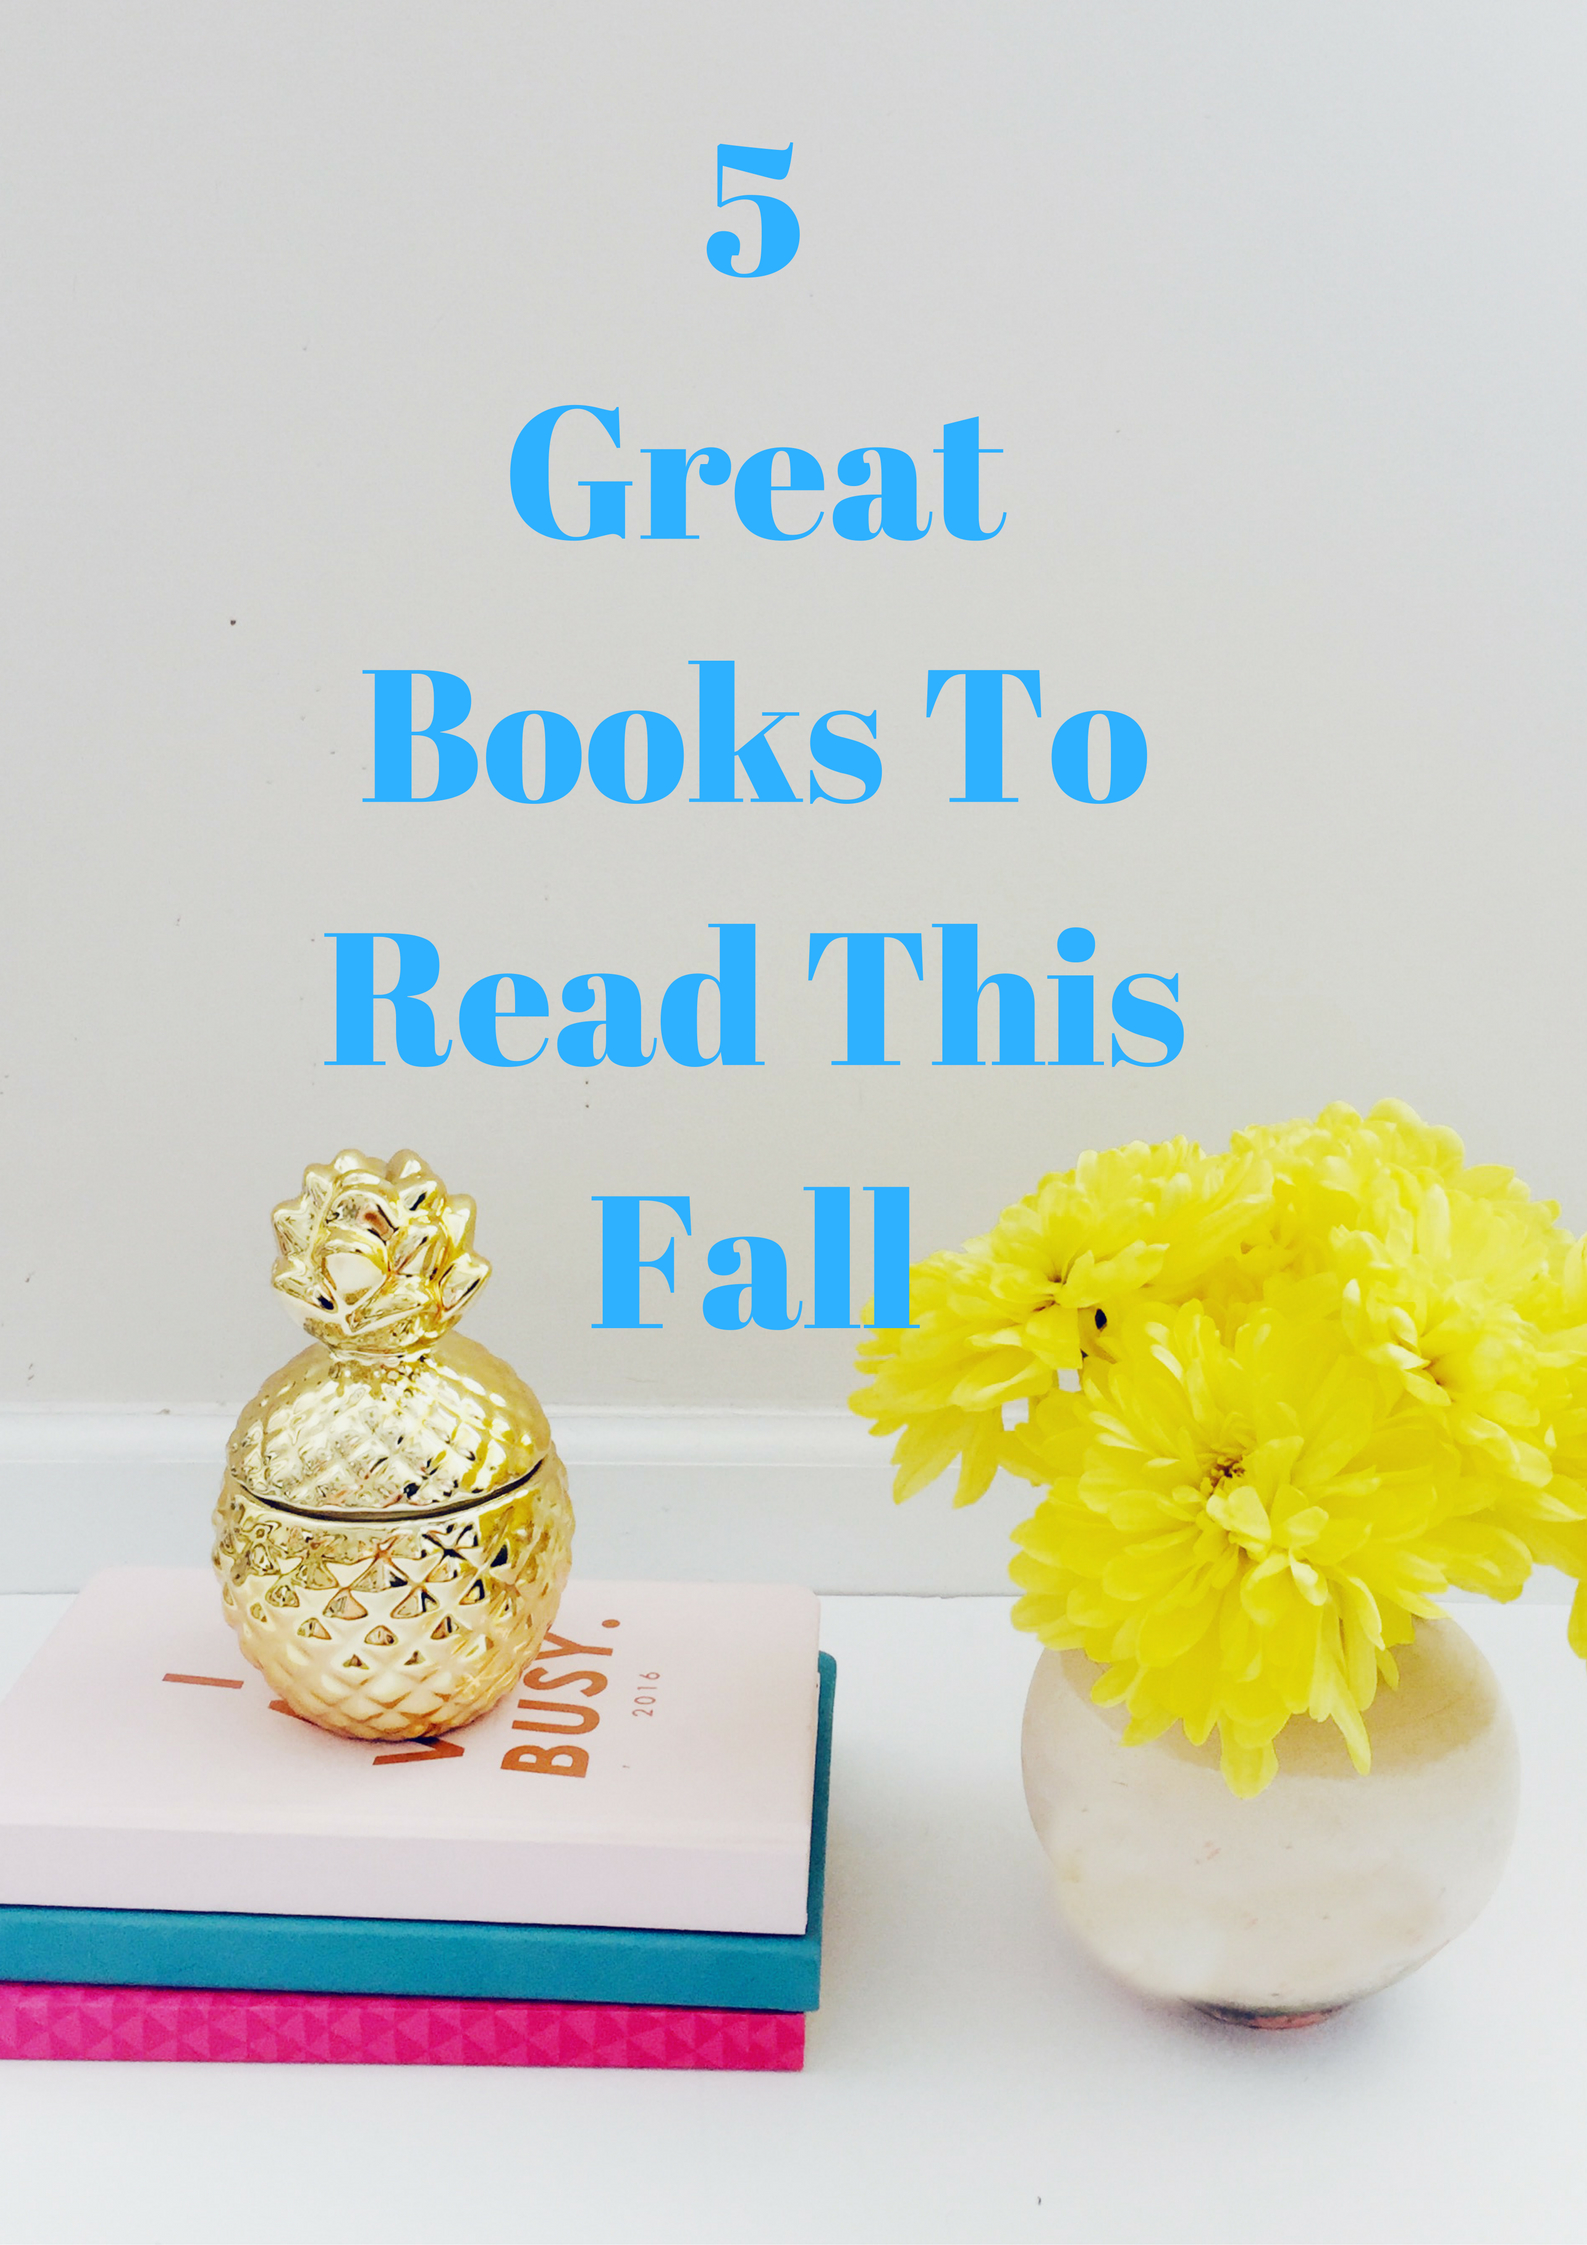 5 Great Books To Read This Fall